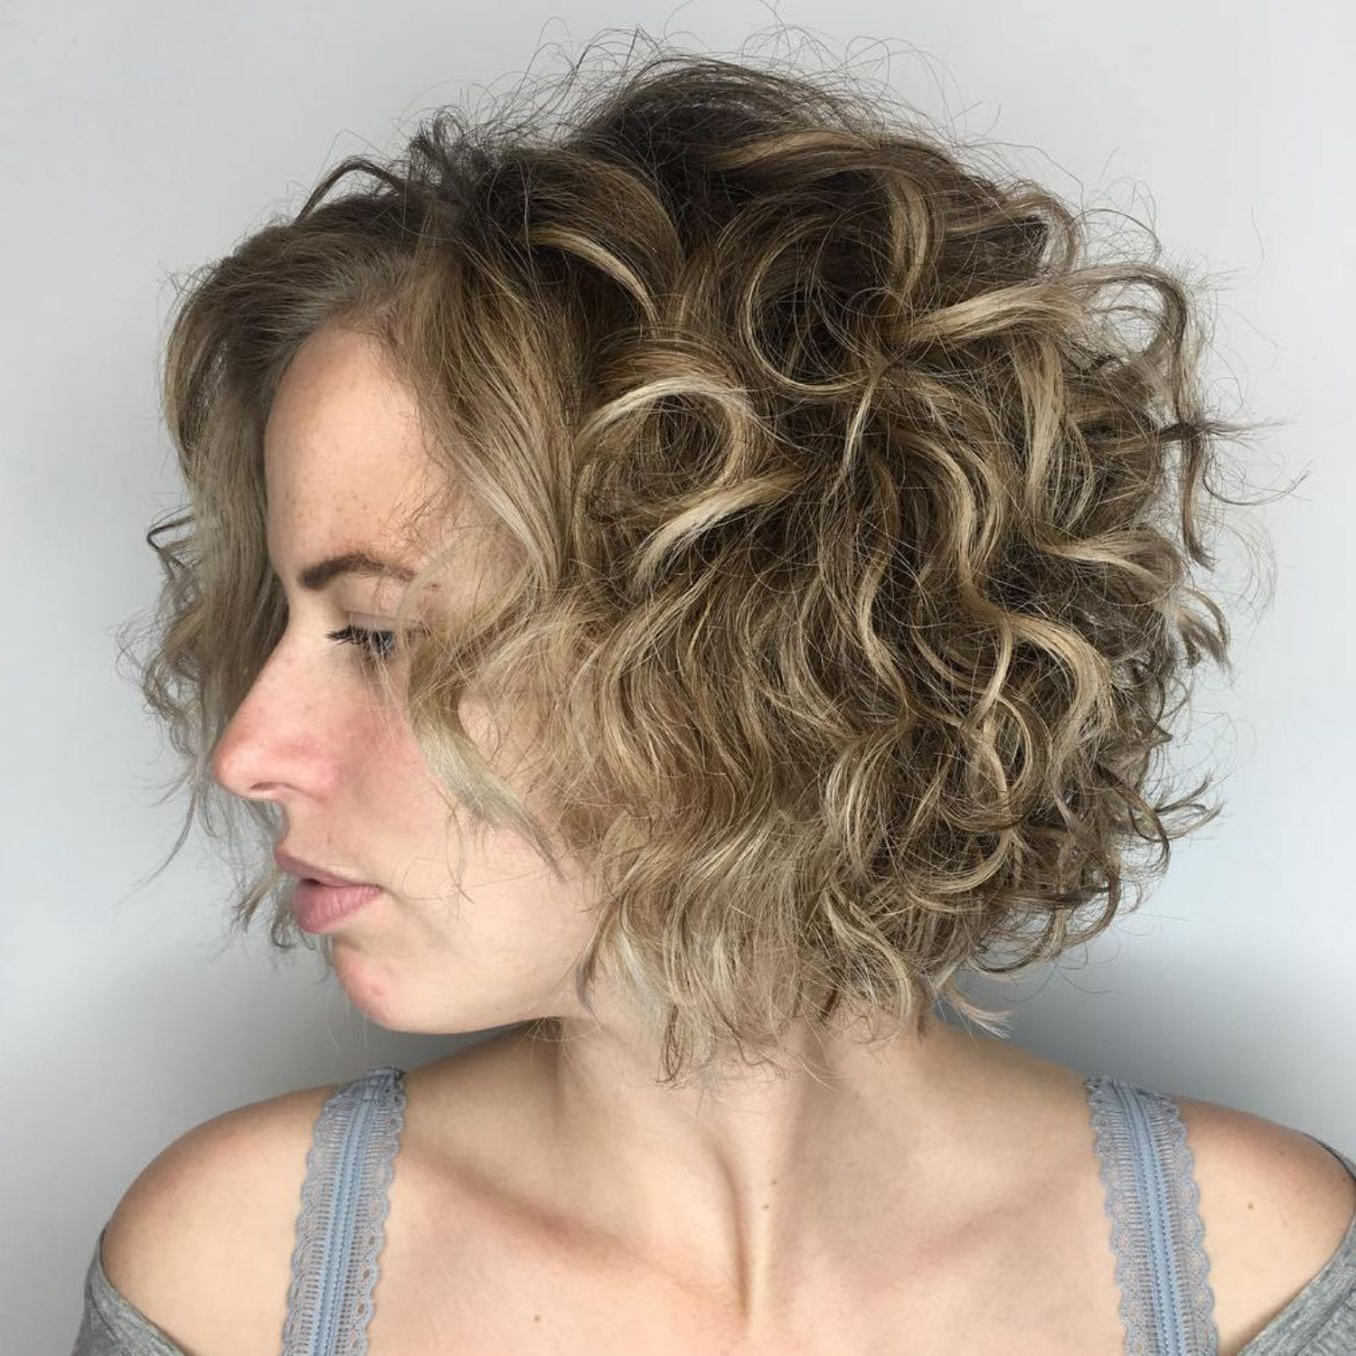 60 Styles And Cuts For Naturally Curly Hair In 2018 | Hair <3 Throughout Angelic Blonde Balayage Bob Hairstyles With Curls (Gallery 5 of 25)